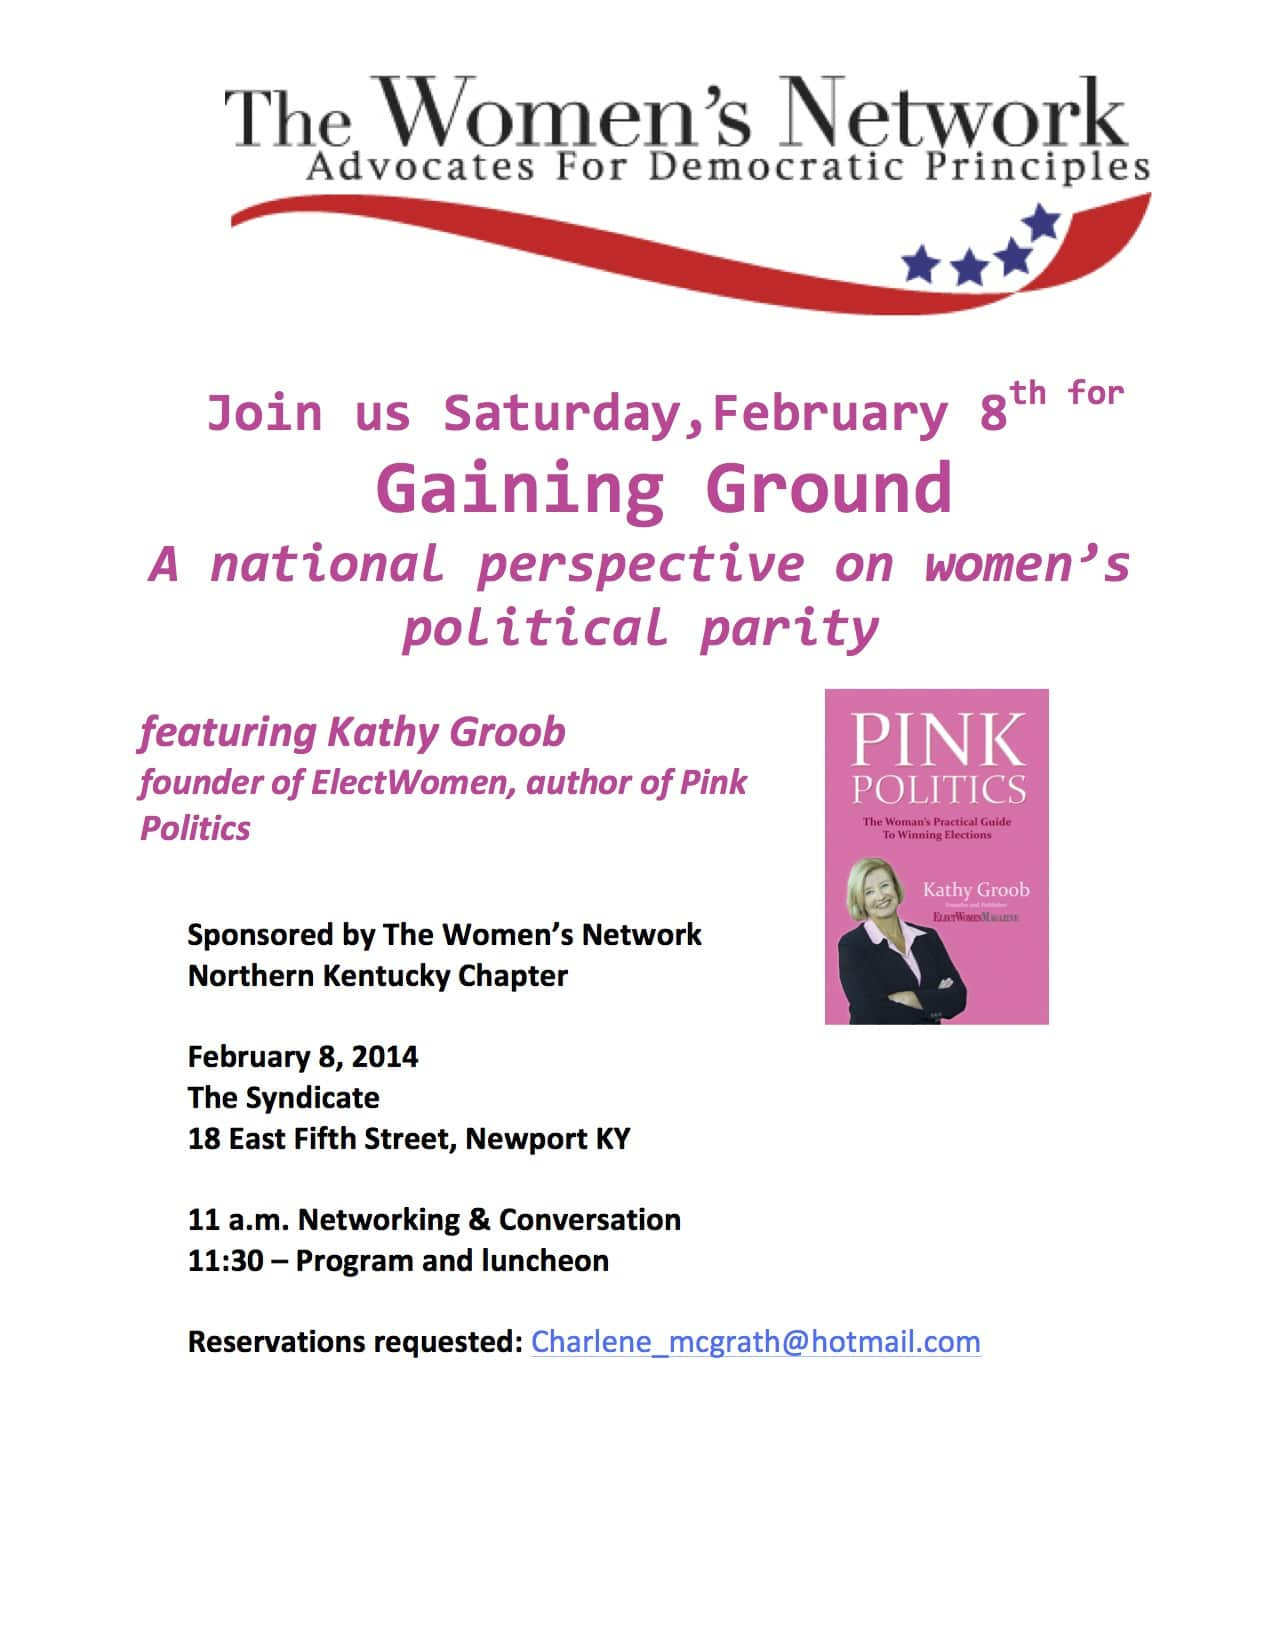 Join the Conversation: Gaining Ground, Women's Political Parity Discussion Feb. 8th